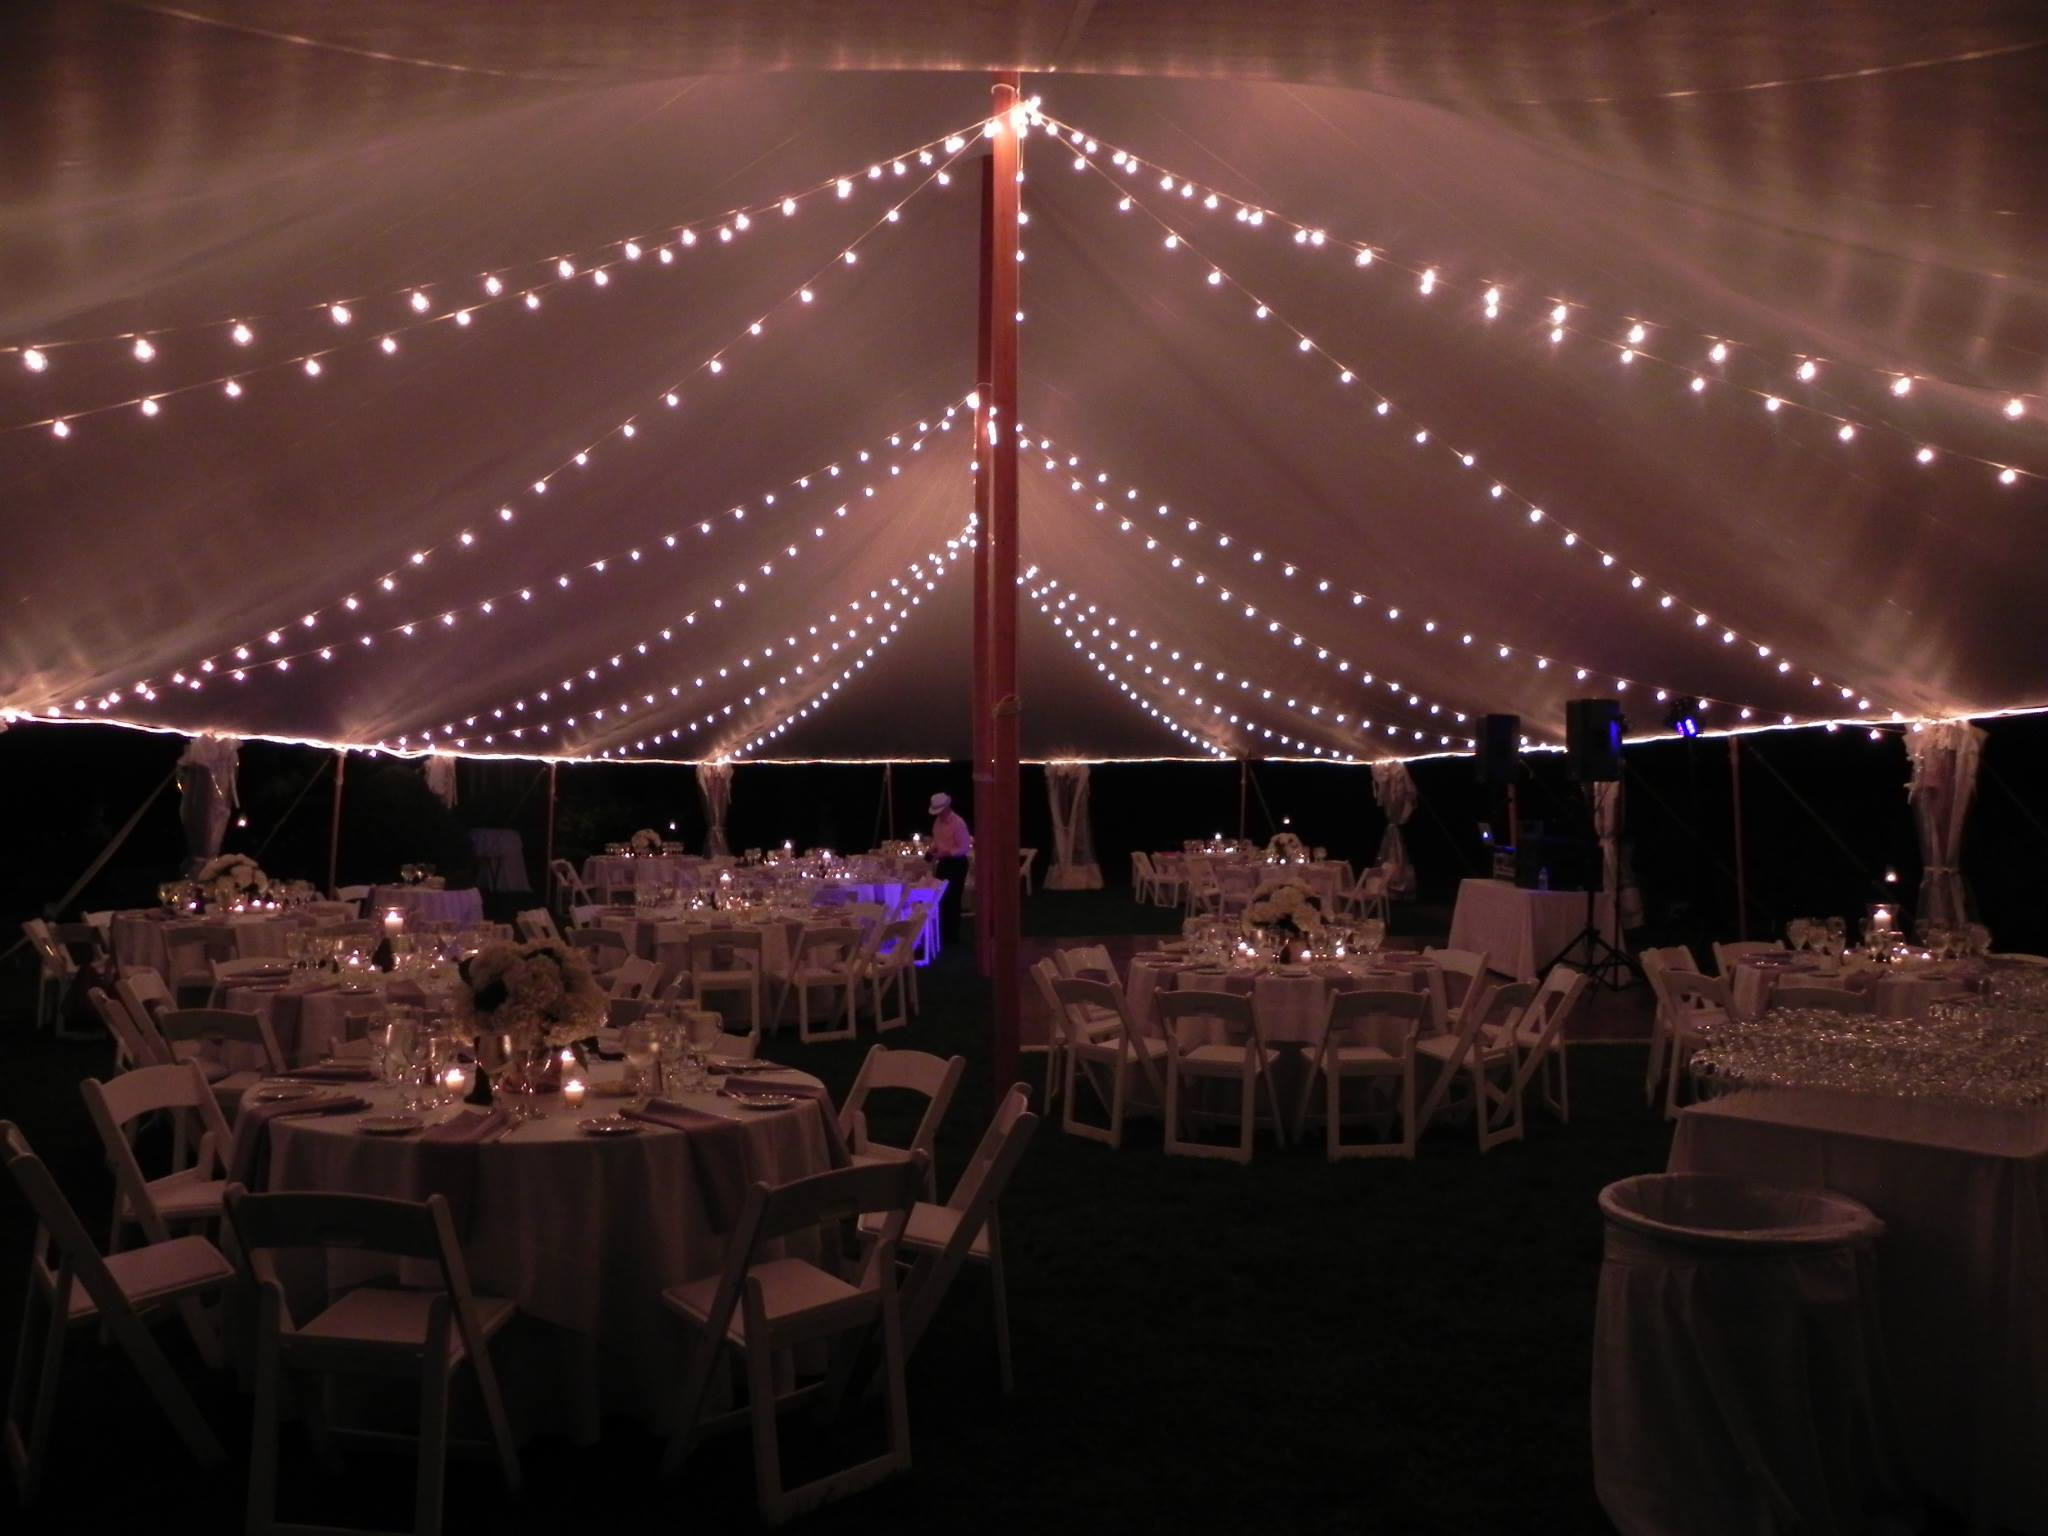 Wedding Tent Rentals Near Me Cost Packages Sizes Images